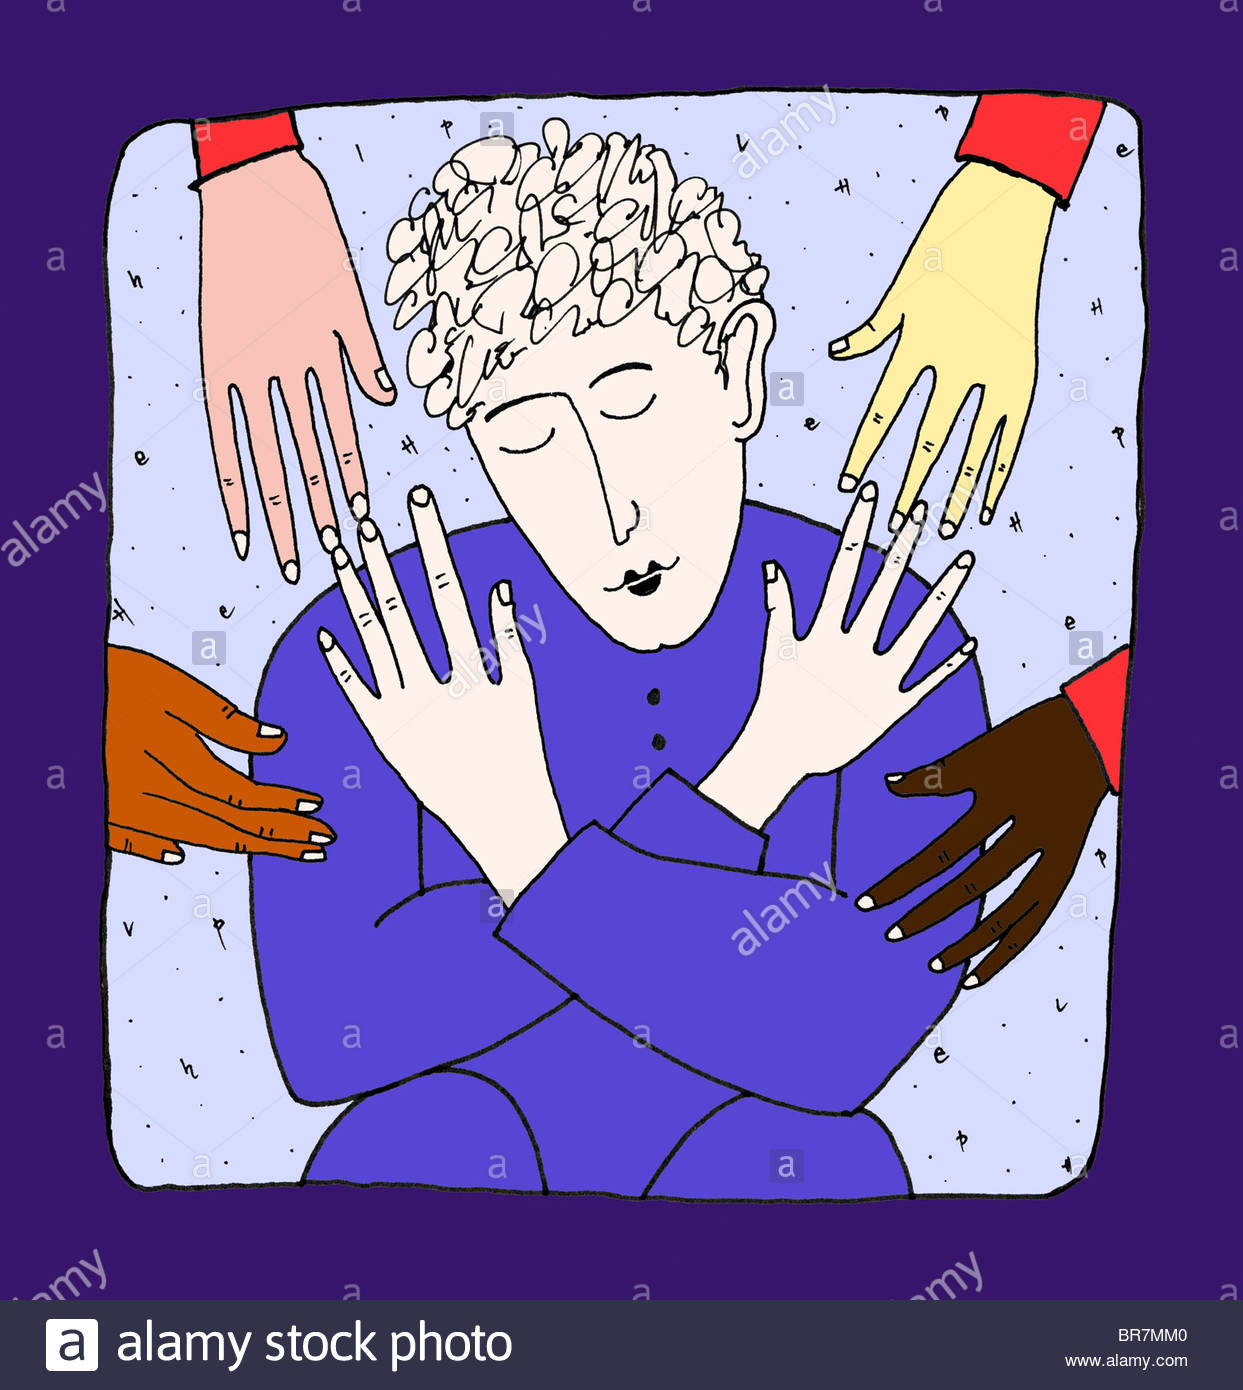 1243x1390 A Drawing Of A Woman And Helping Hands Stock Photo, Royalty Free